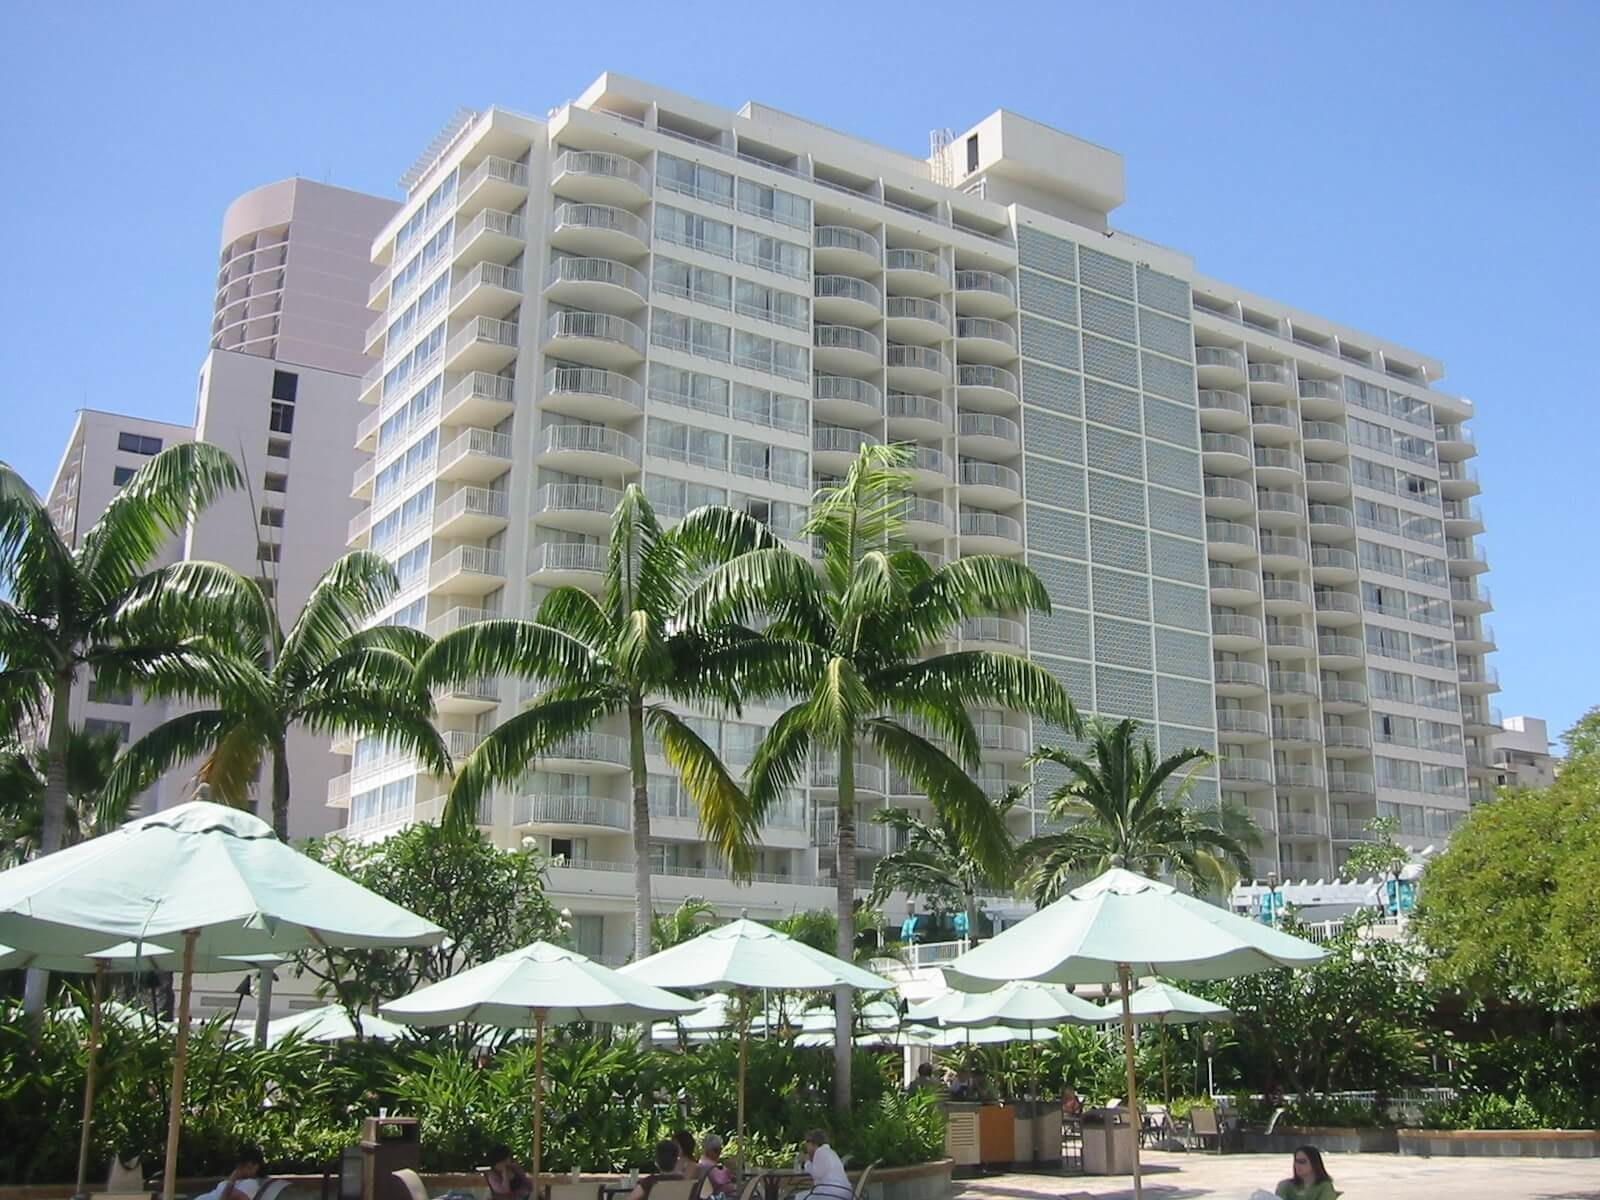 Diamond Resorts' decision to lay off 78 workers at The Modern Honolulu hotel condemned by union